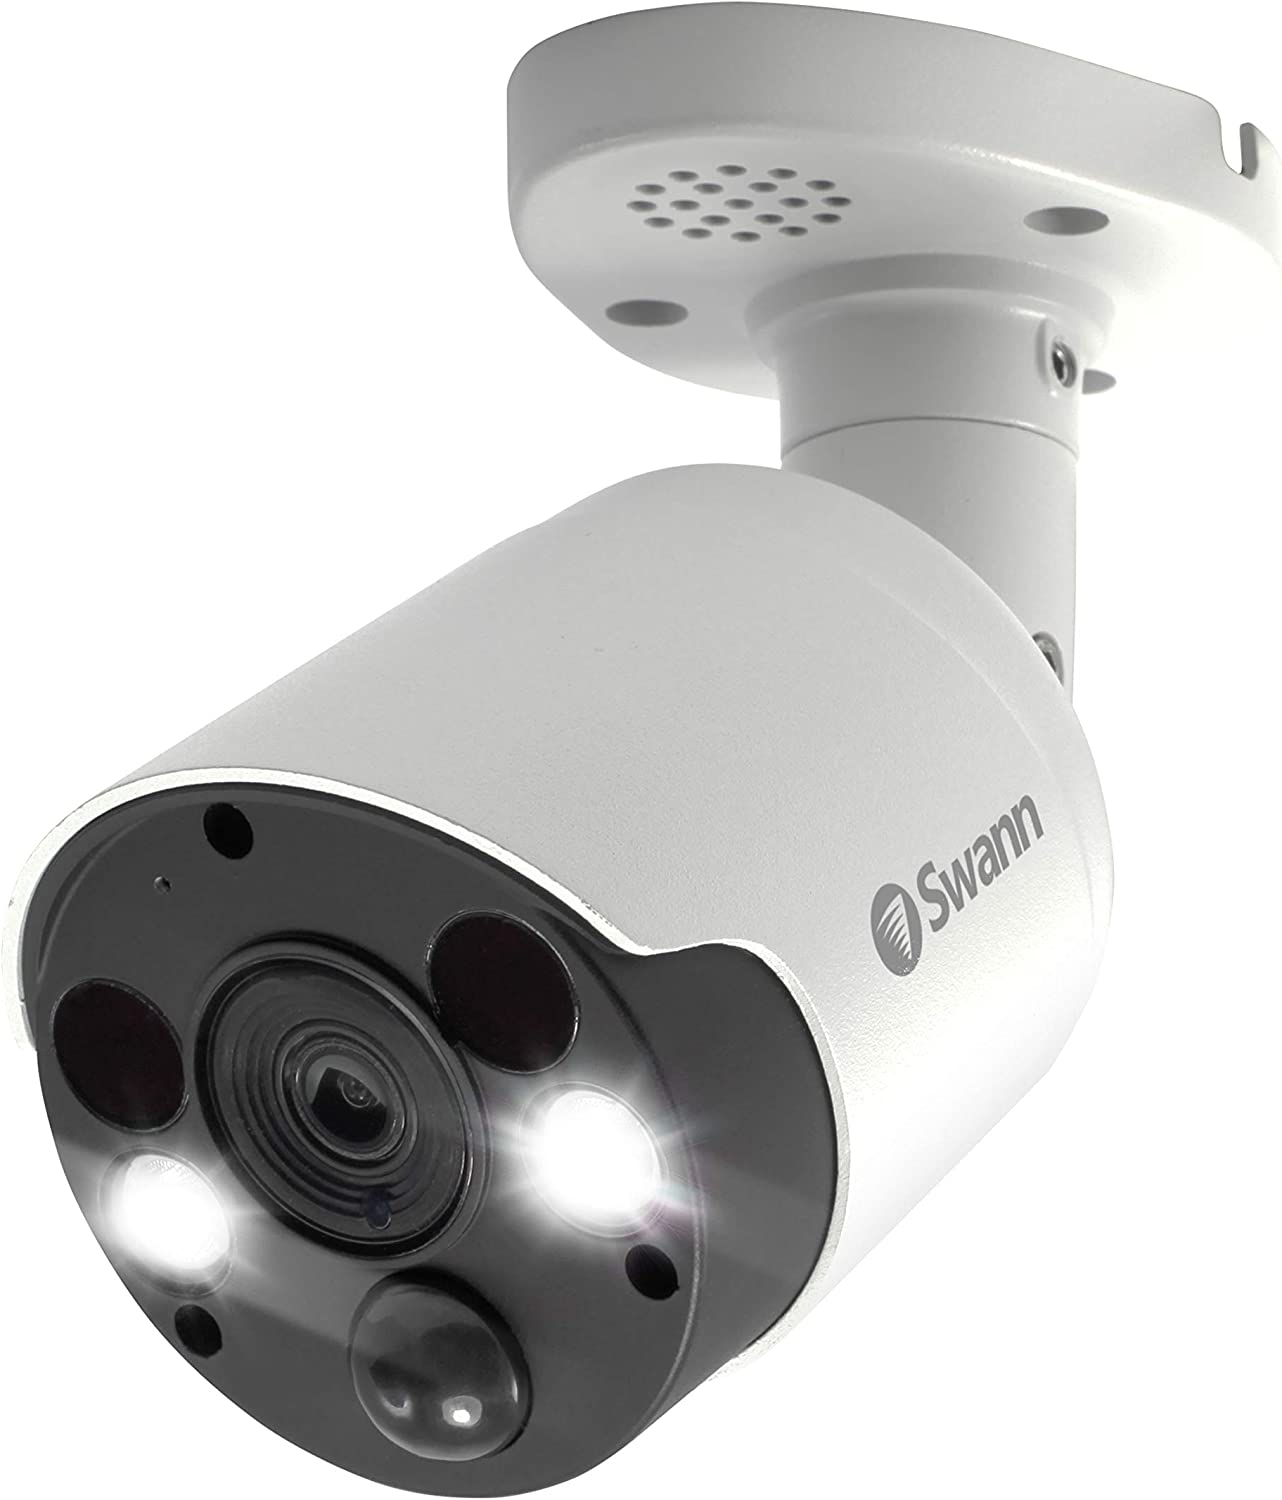 Swann Home Credence Security Camera Indoor Tucson Mall Outdoor PIR Wired Surv Bullet